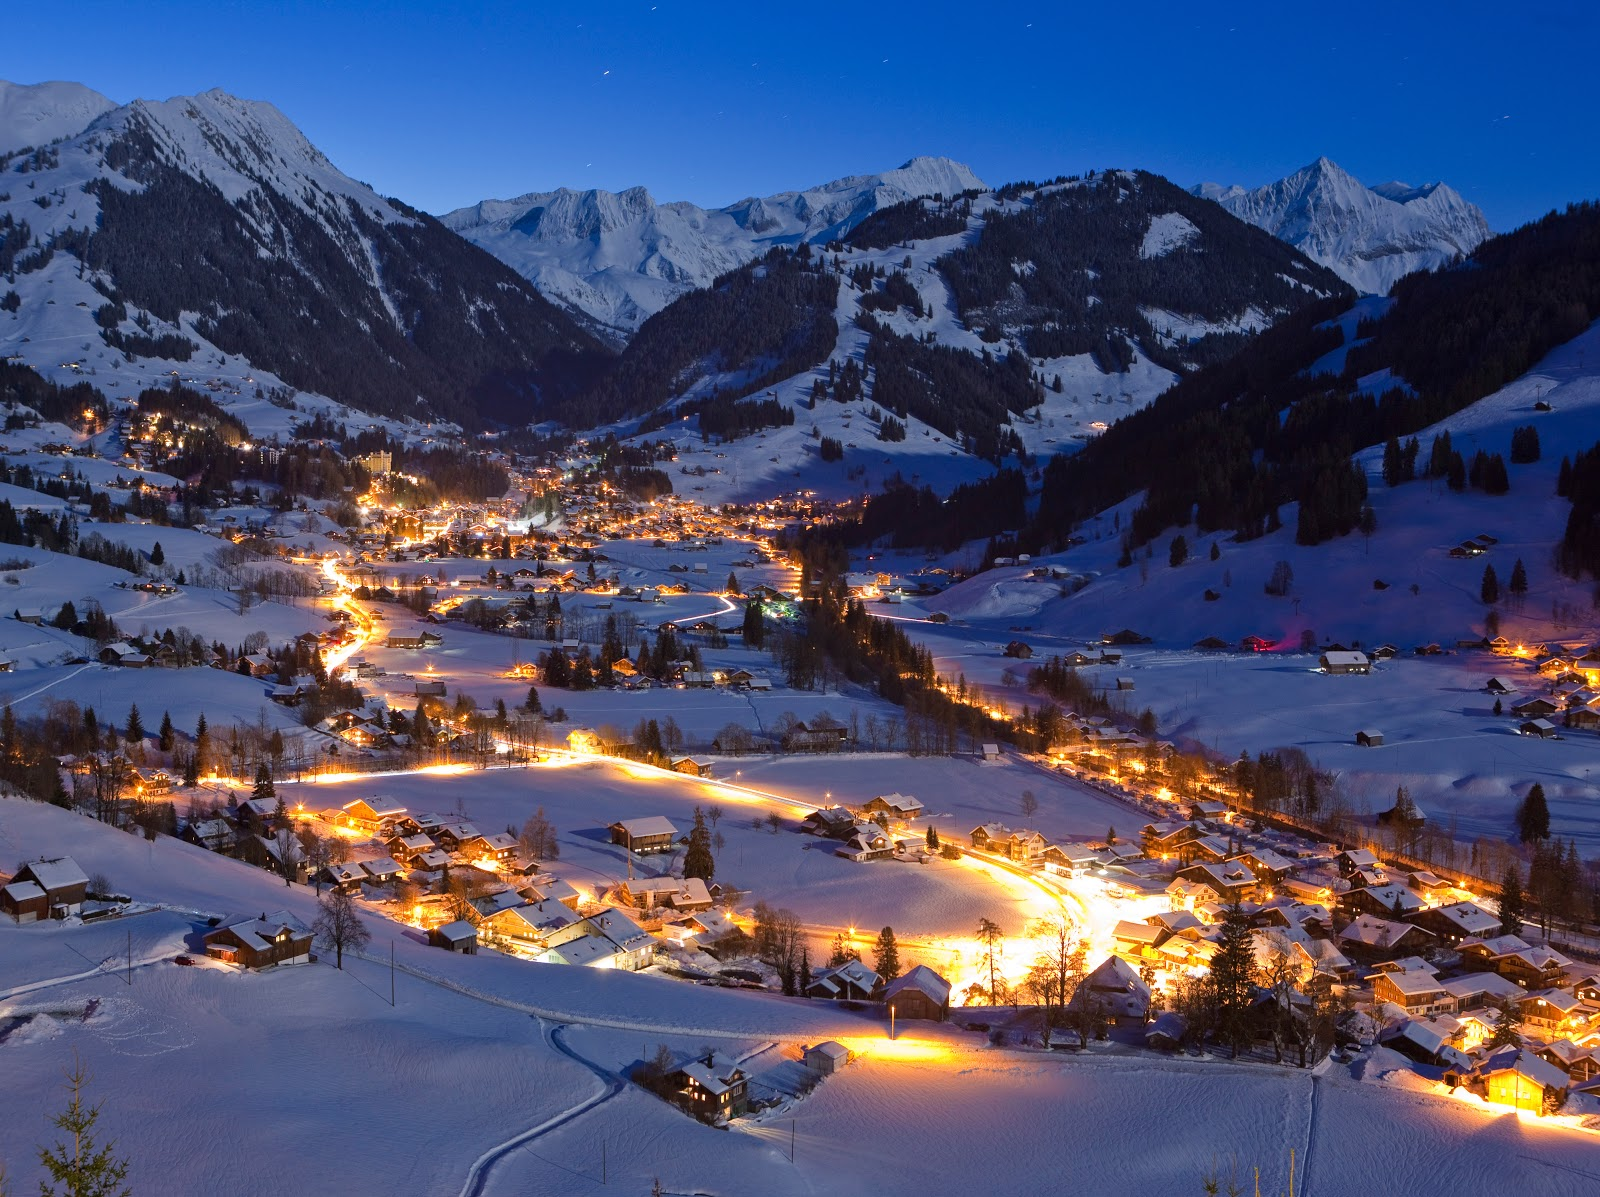 The splendor of Gstaad and the Swiss countryside at dusk. Photo: Gstaad Saanenland Tourismus.